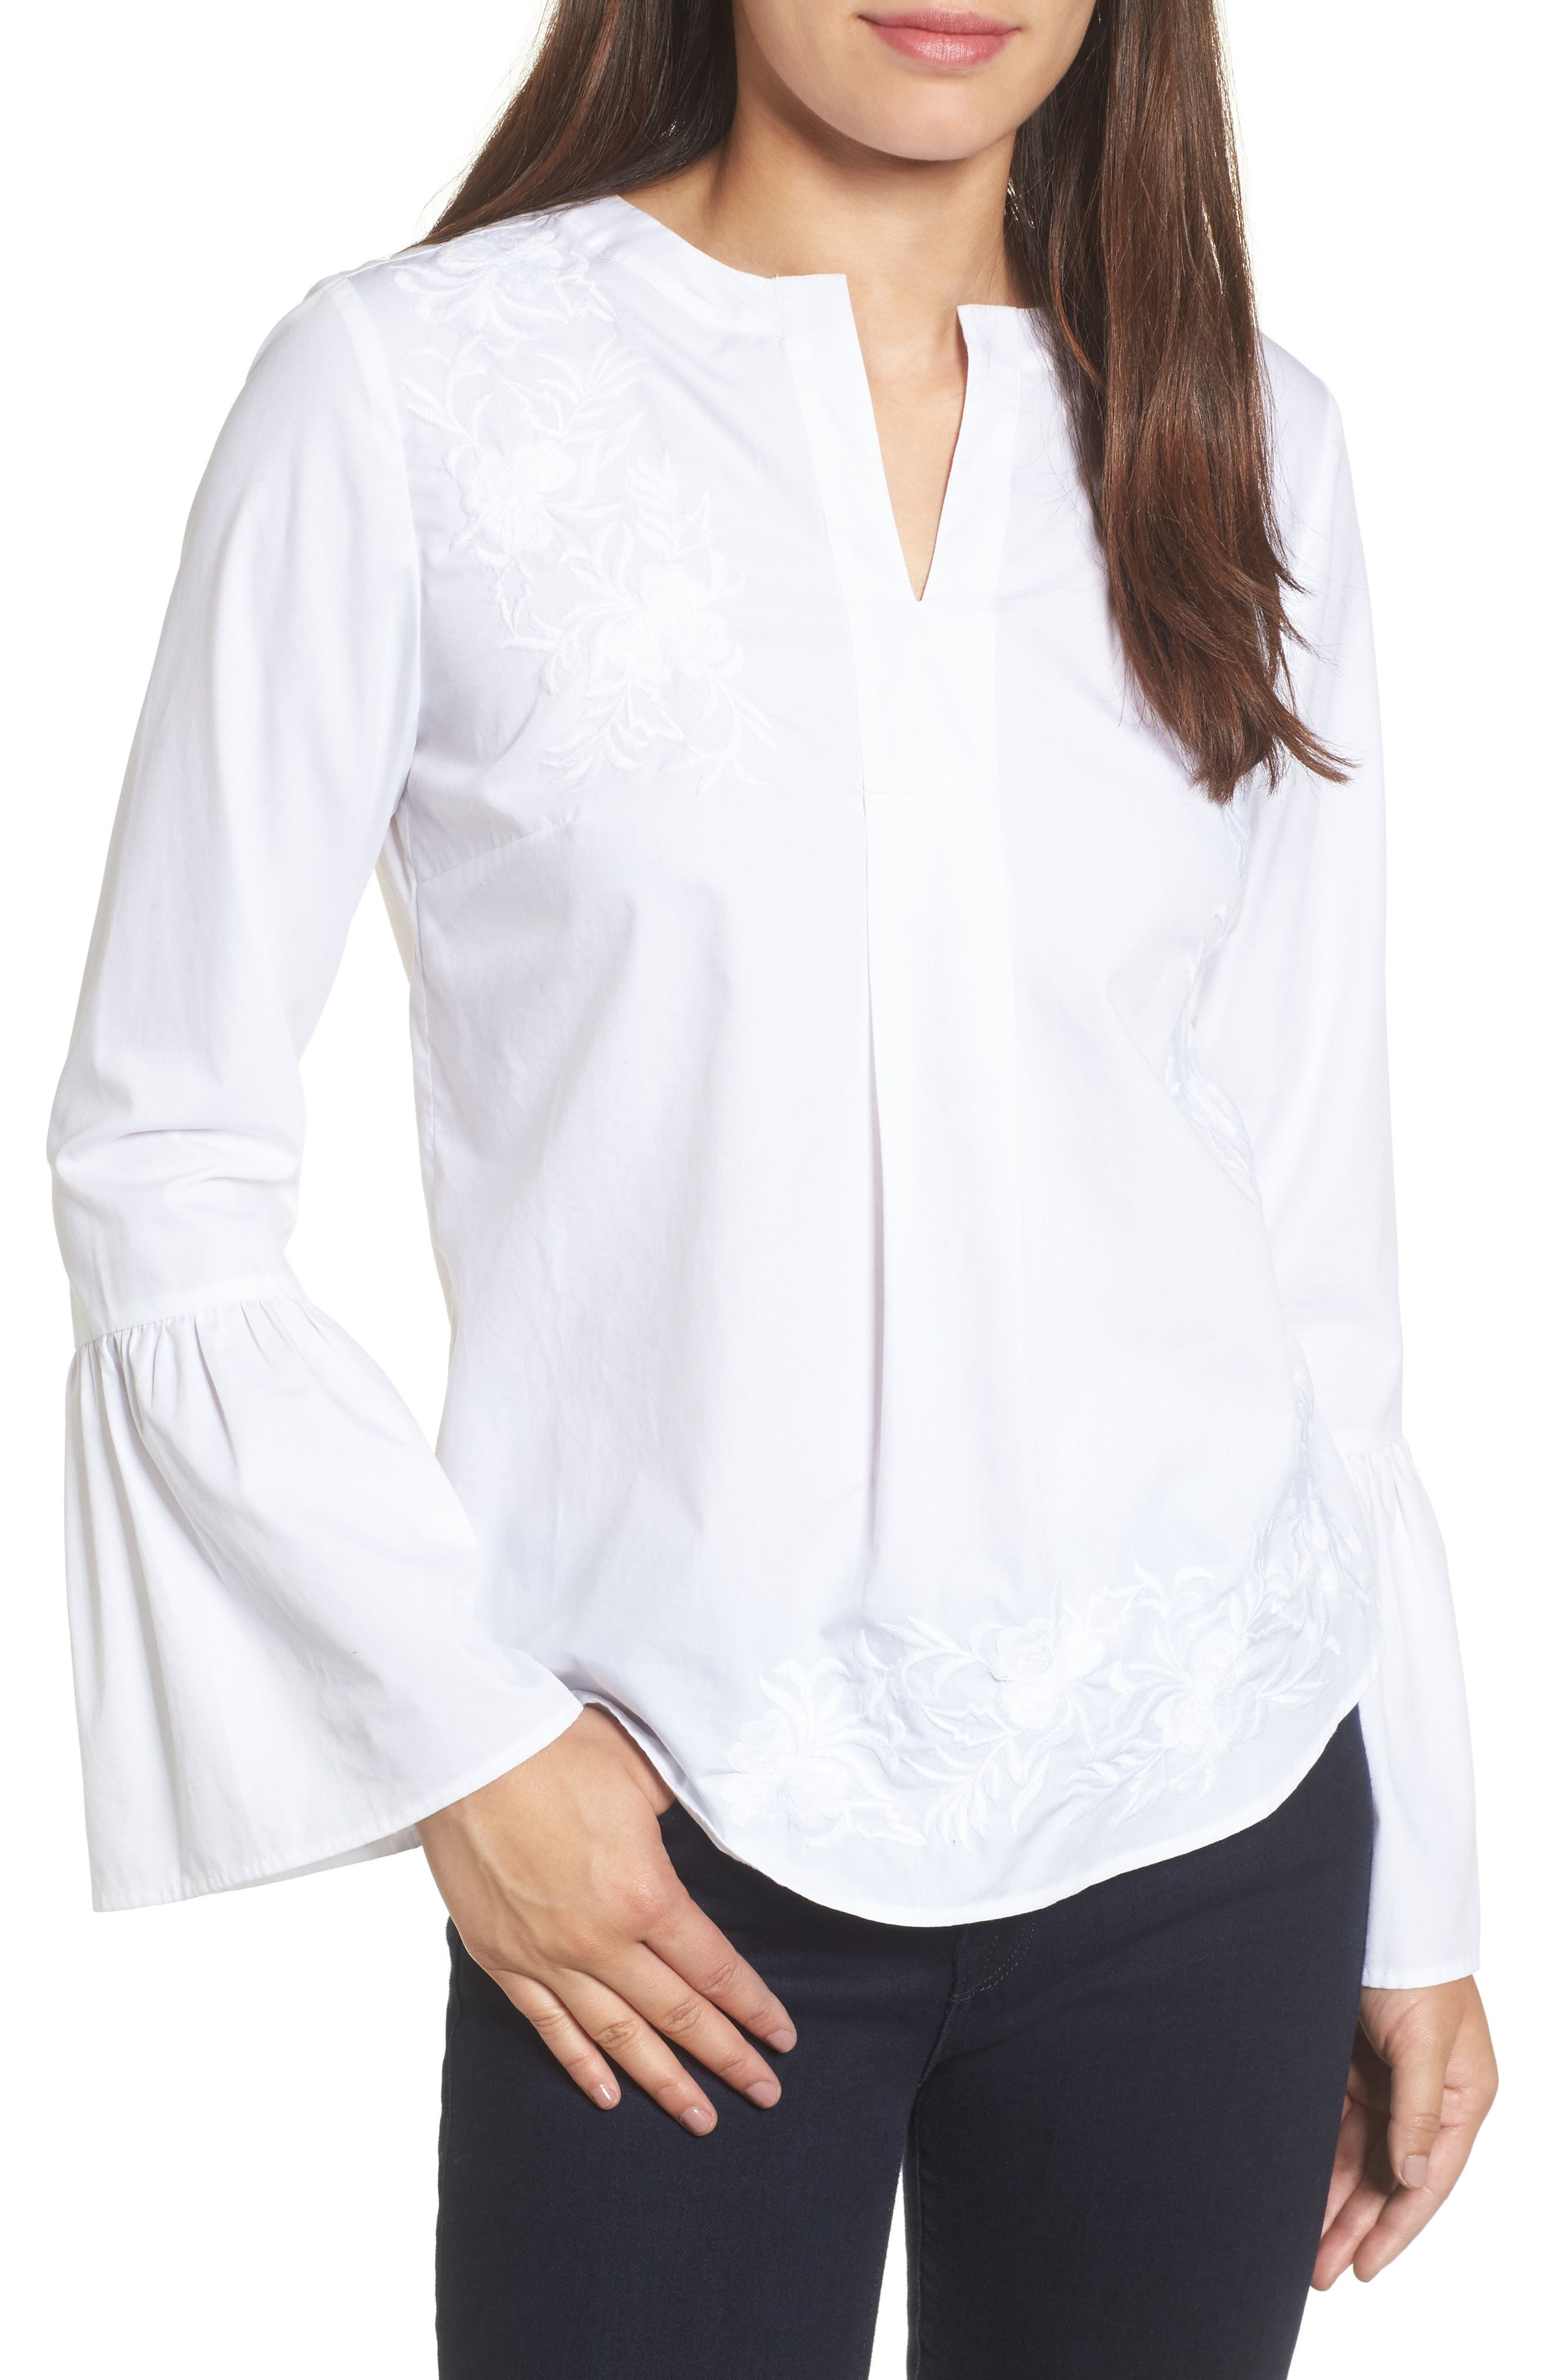 Alternate Image 1 Selected - Caslon® Embroidered Bell Sleeve Top (Regular & Petite)